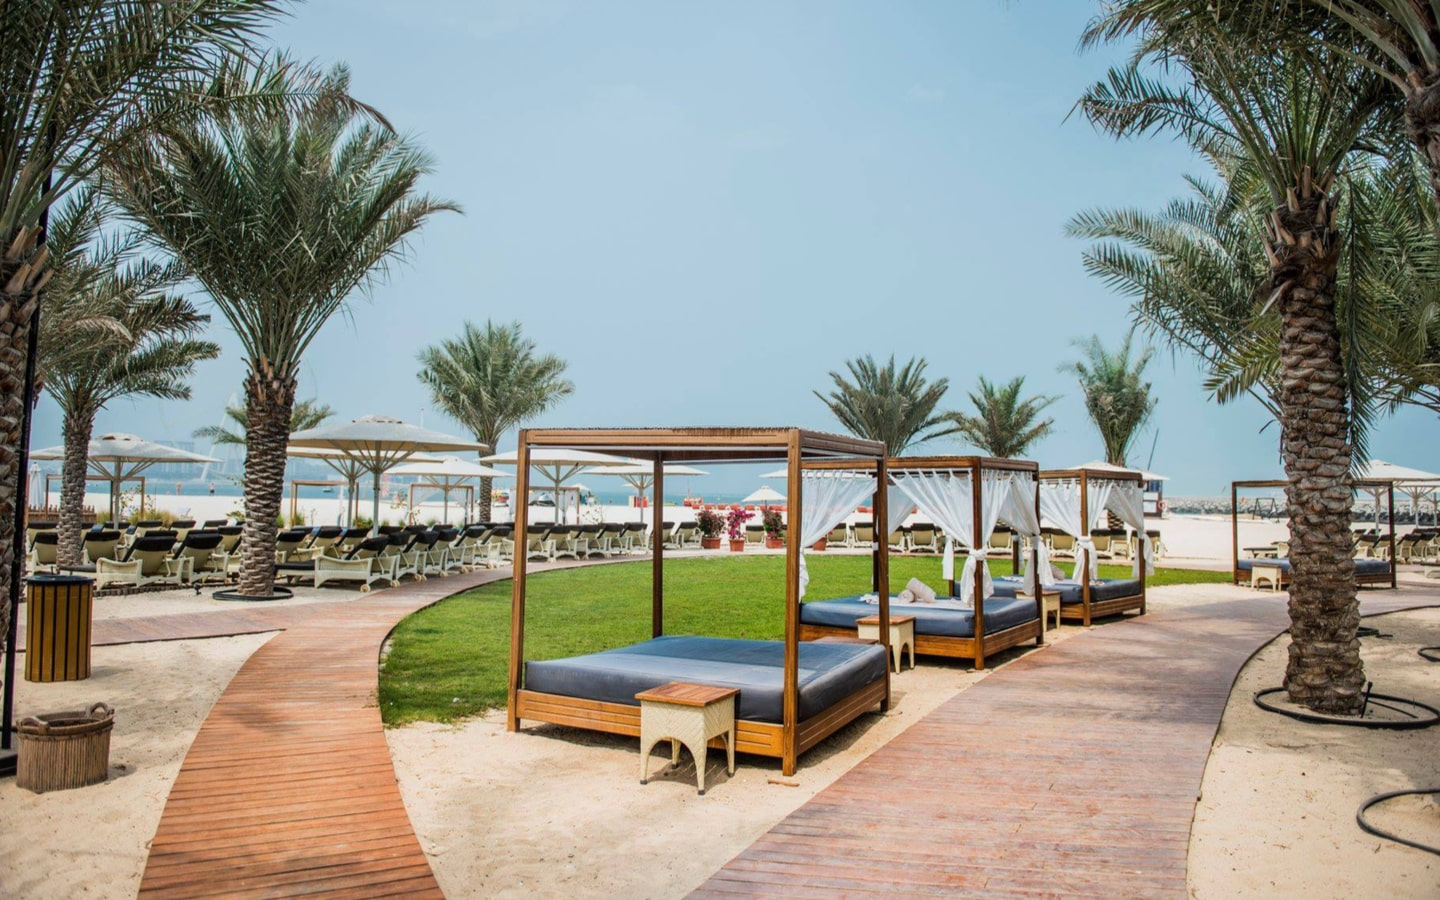 Sunbeds and cabanas at Habtoor Grand Resort, one of the cheaper beach hotels in Dubai